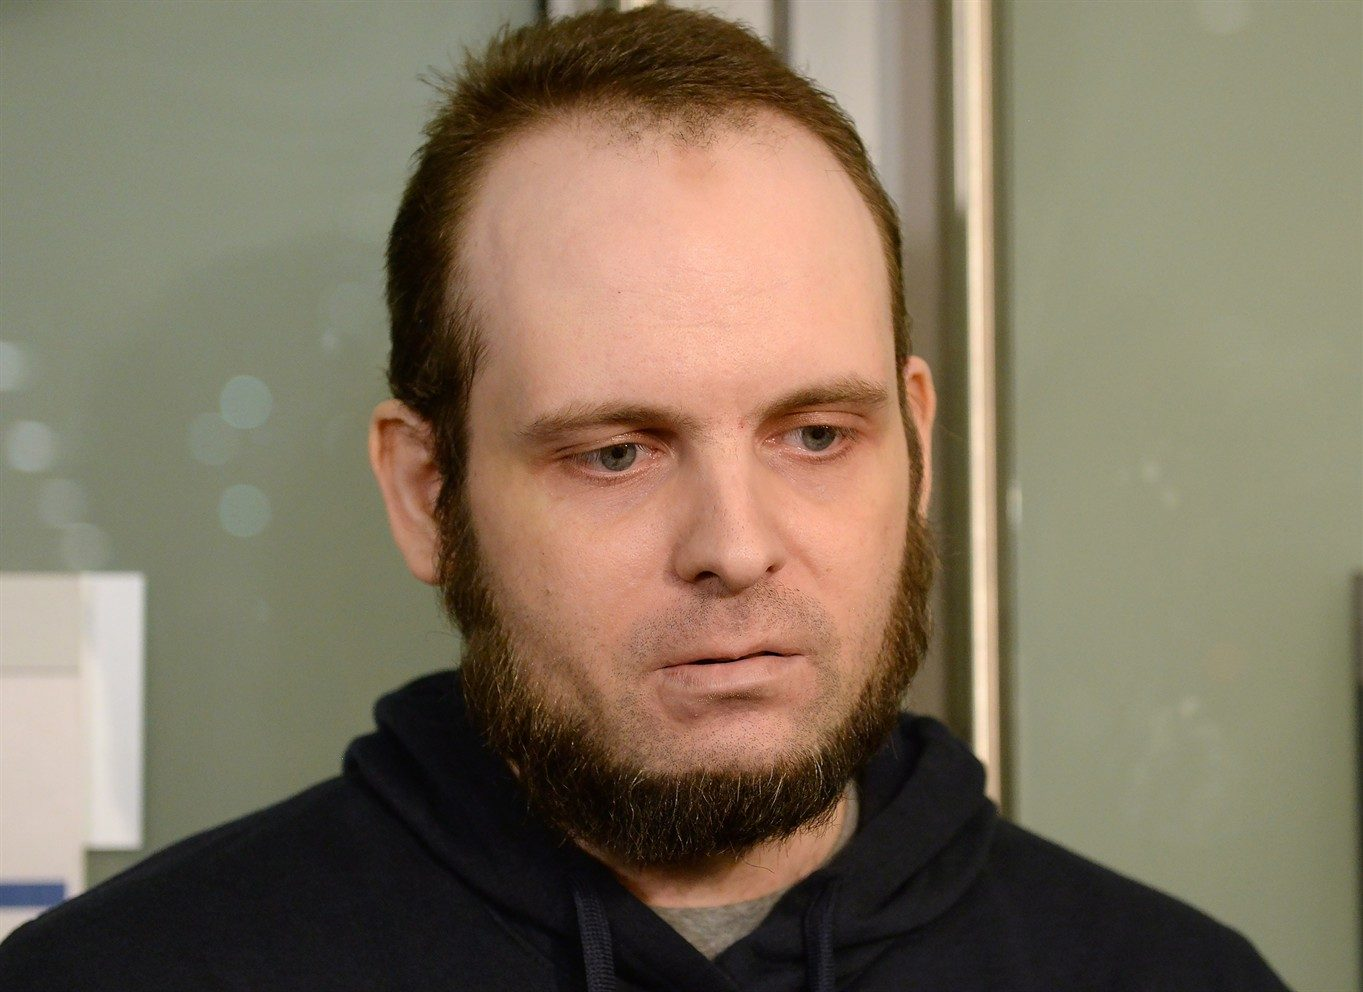 Ex-Afghan hostage Boyle to undergo psychiatric assessment